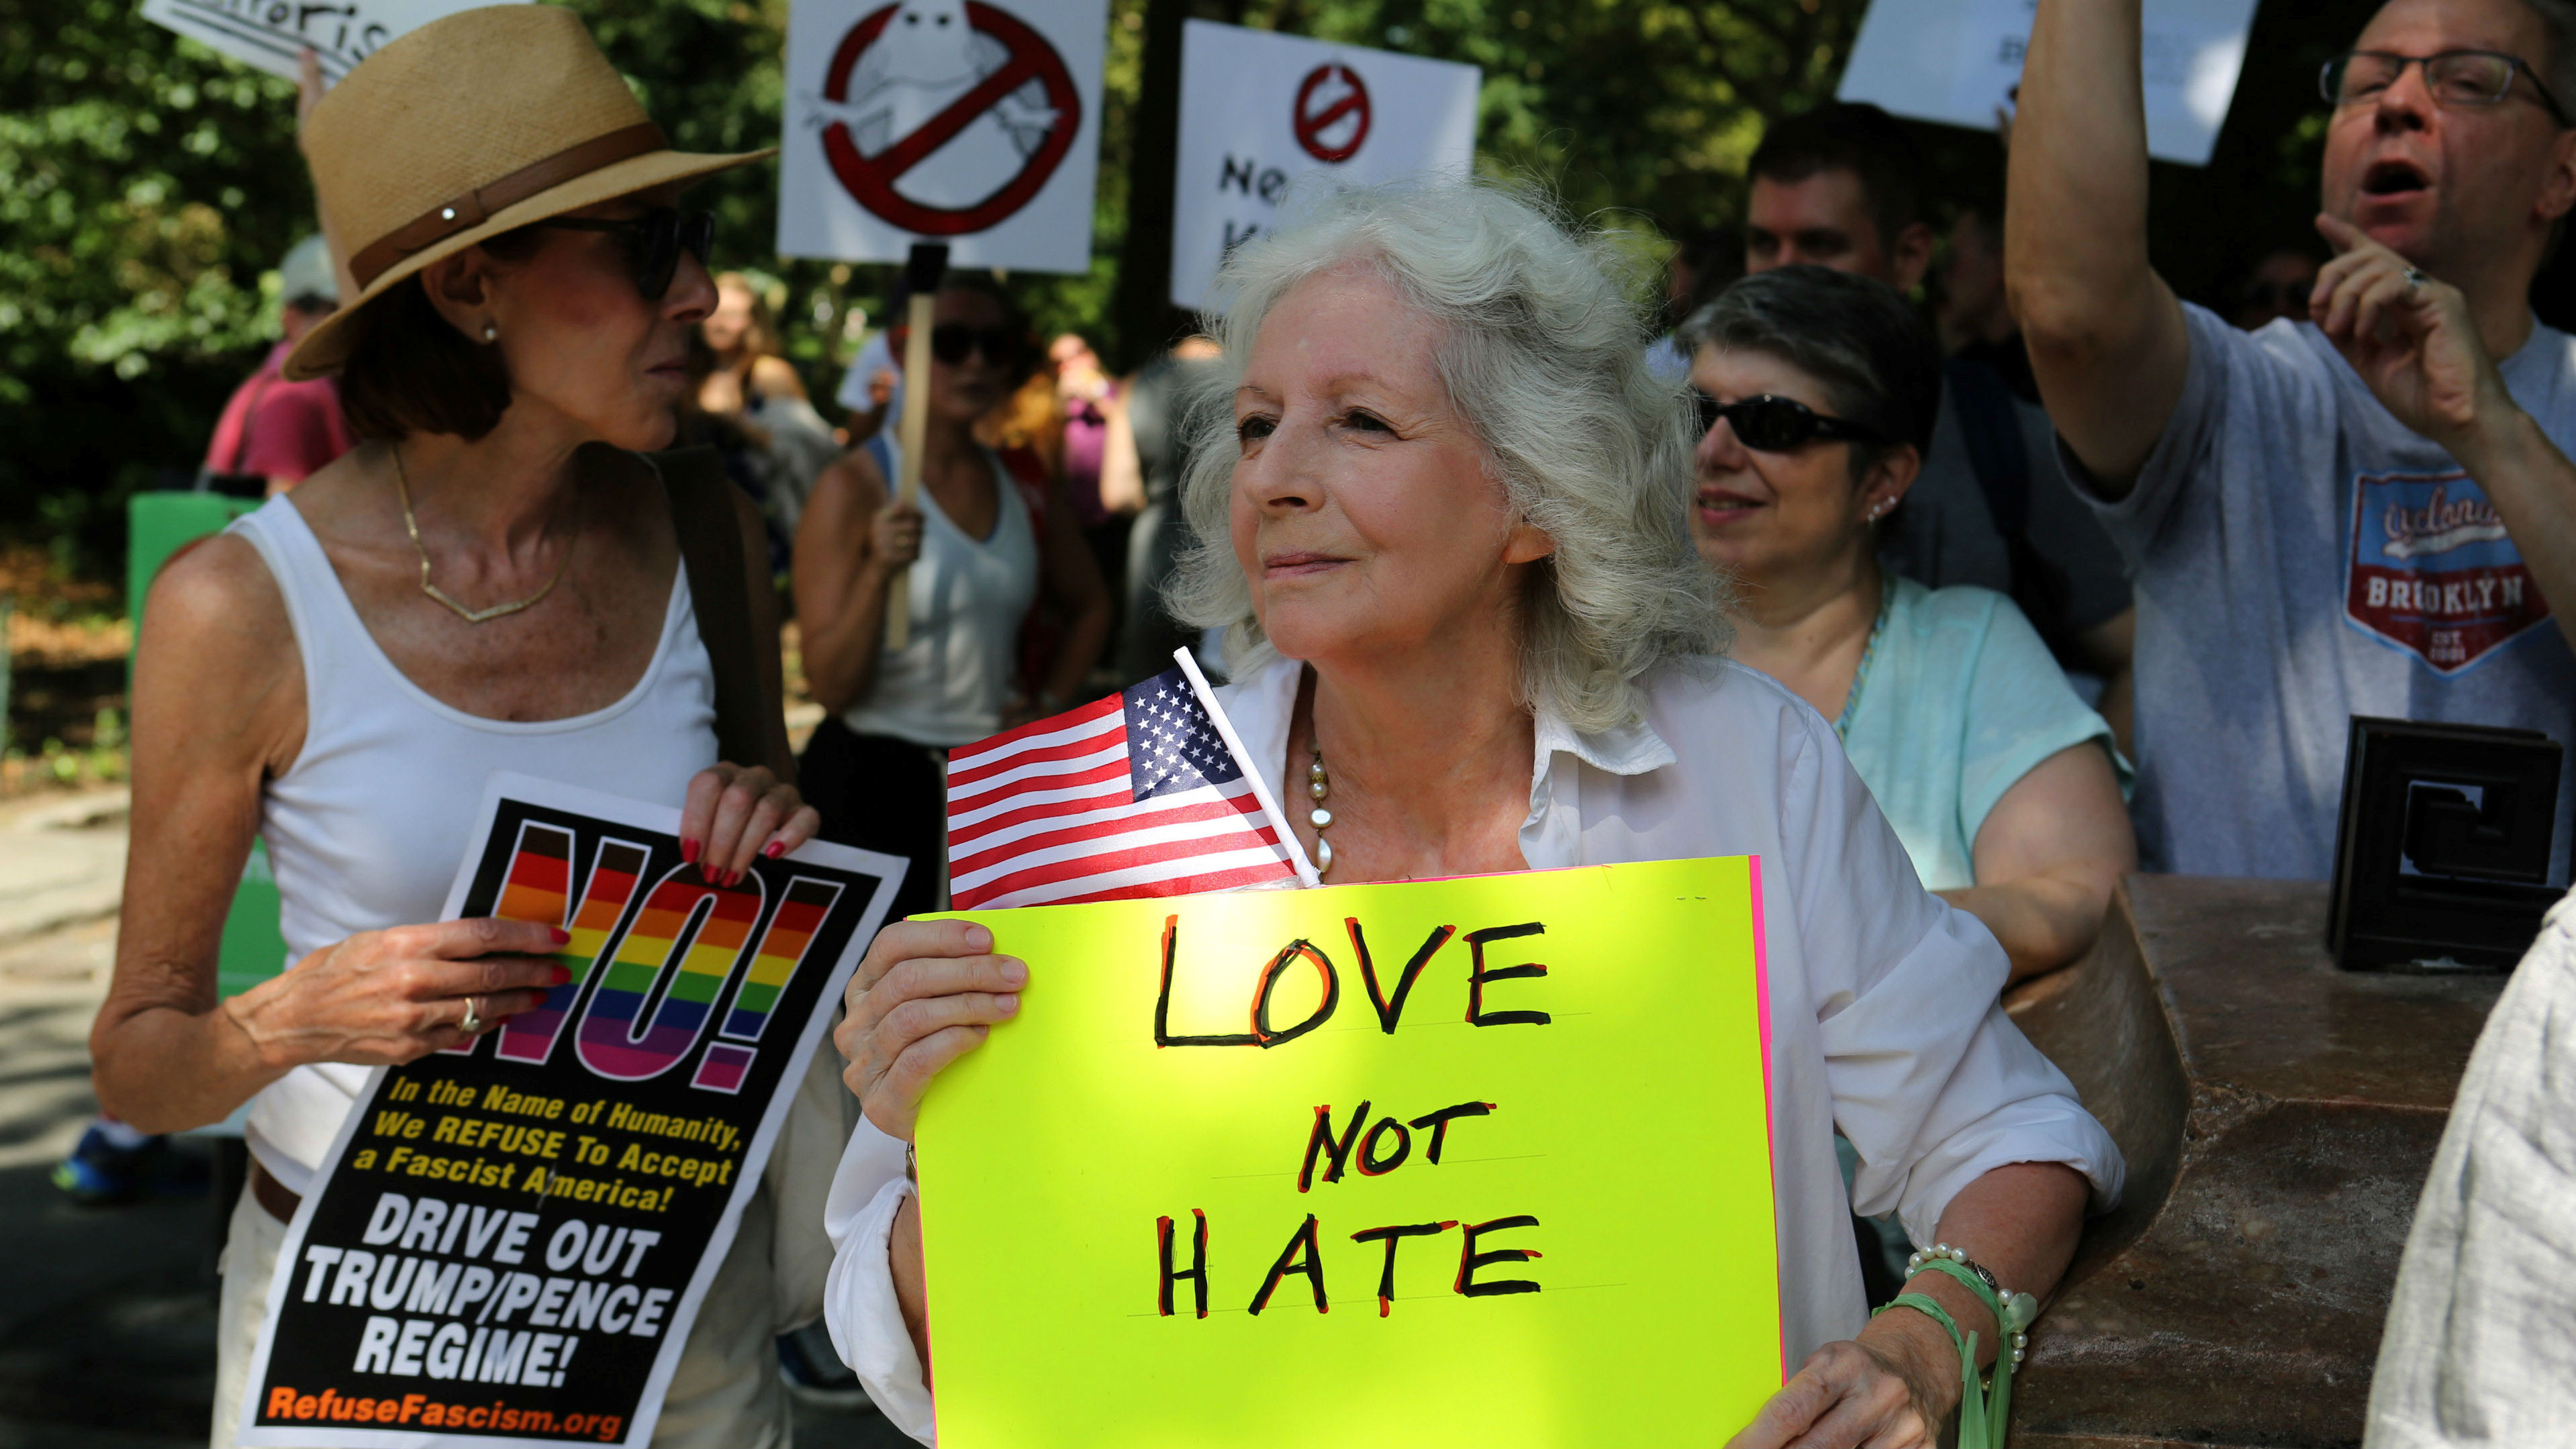 Protestors holding up signs against hate.